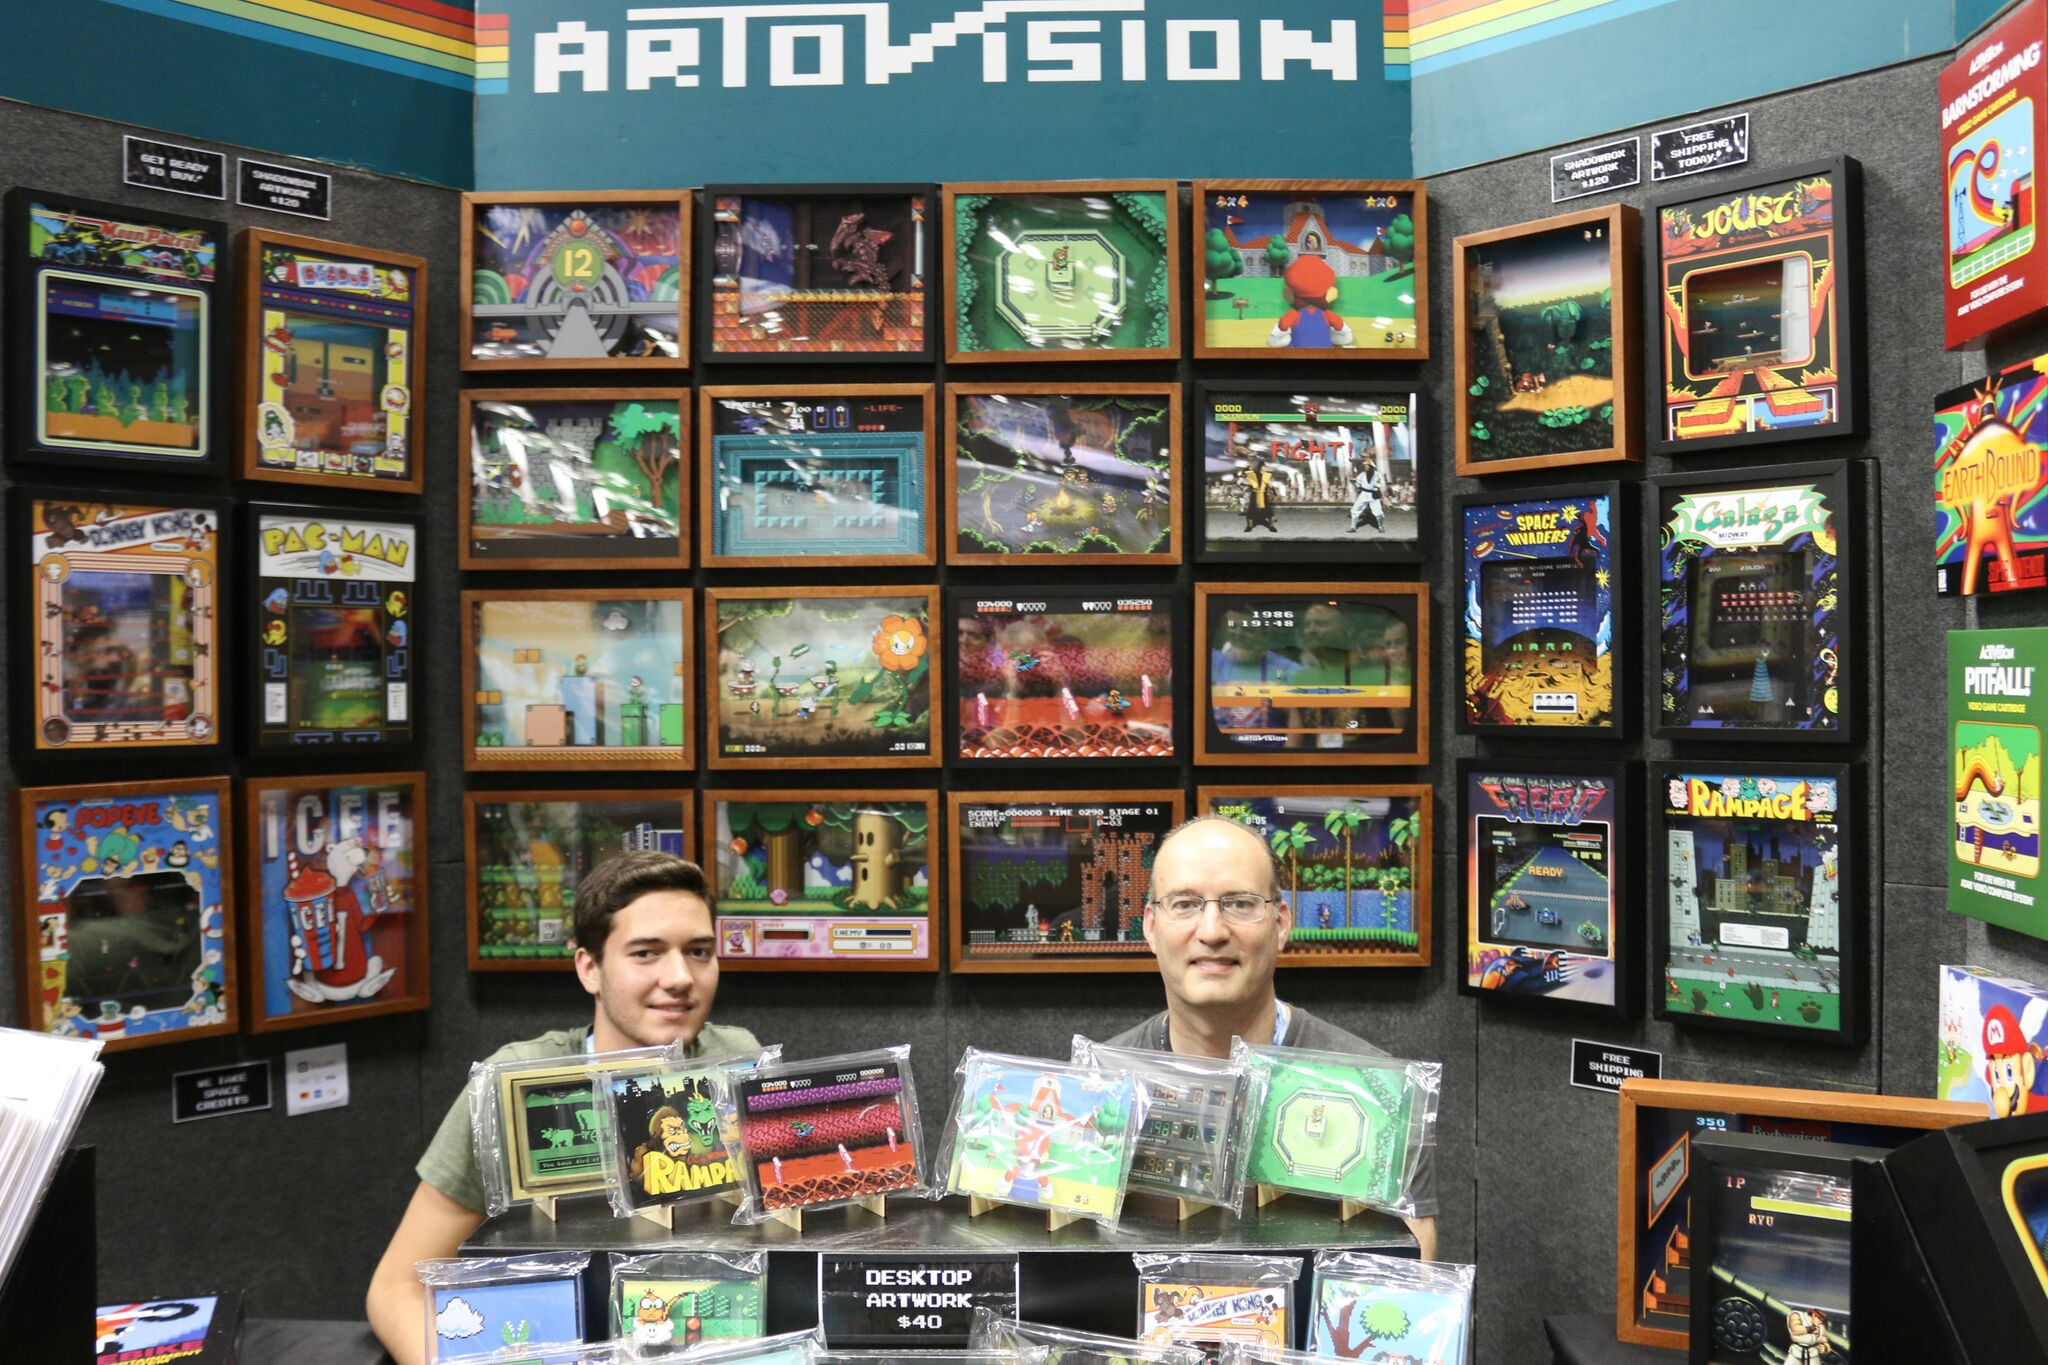 Artovision in Entrepreneur's Ave 2018